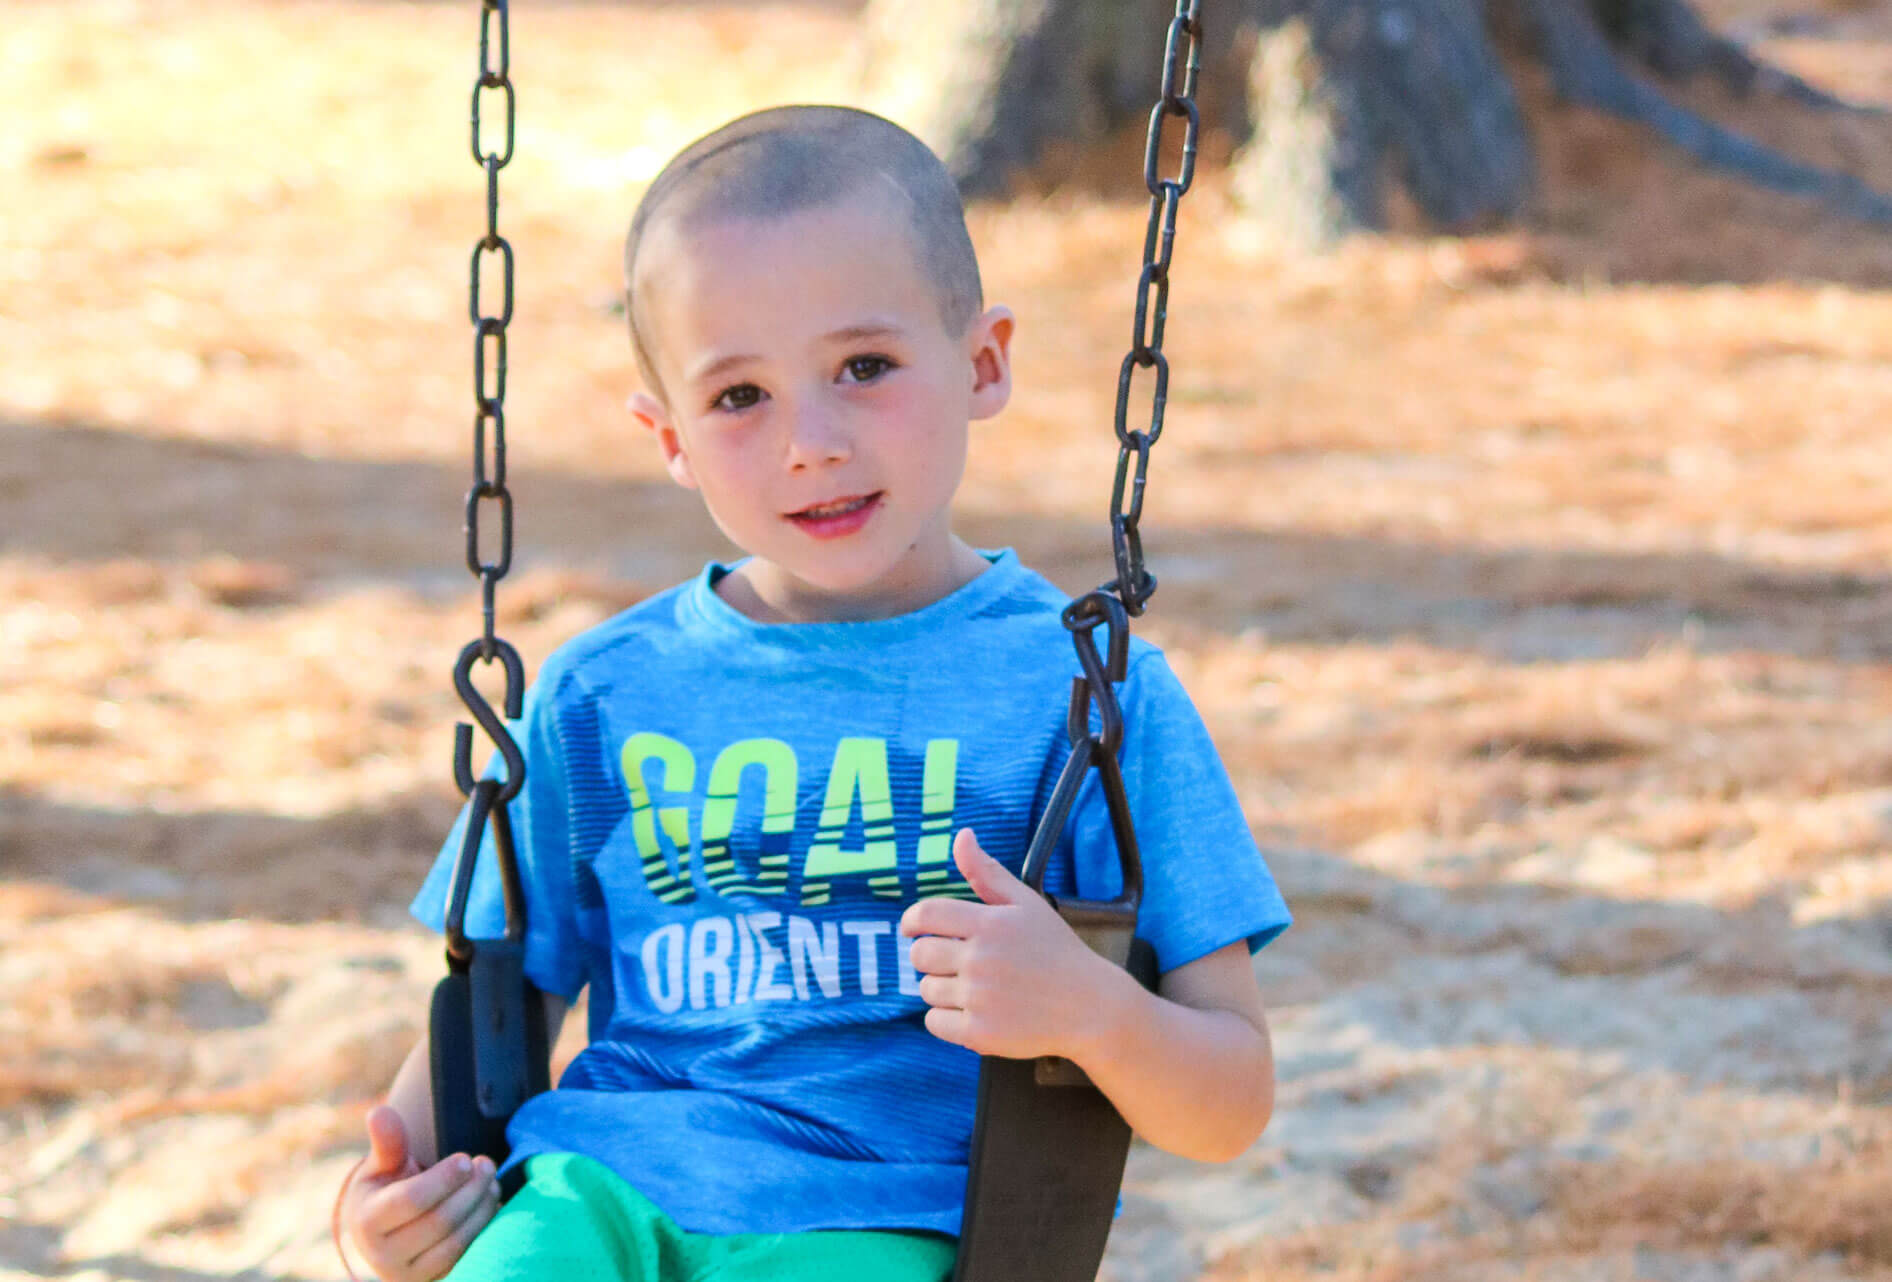 Young camper sits on swing